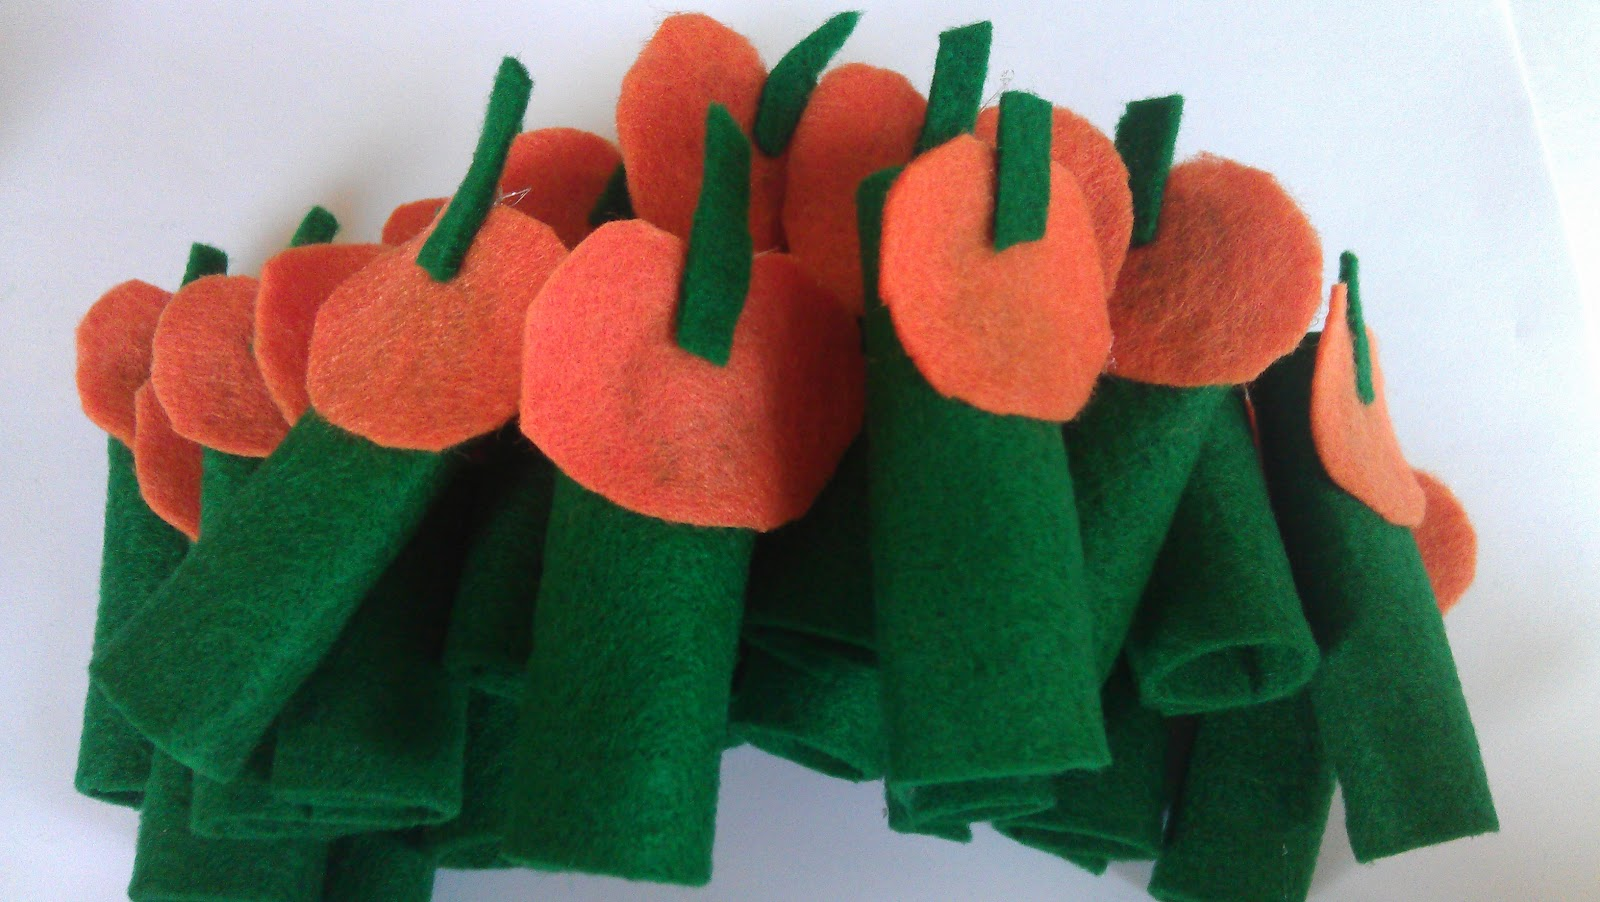 5 Little Pumpkins Felt Finger Puppets Tutorial